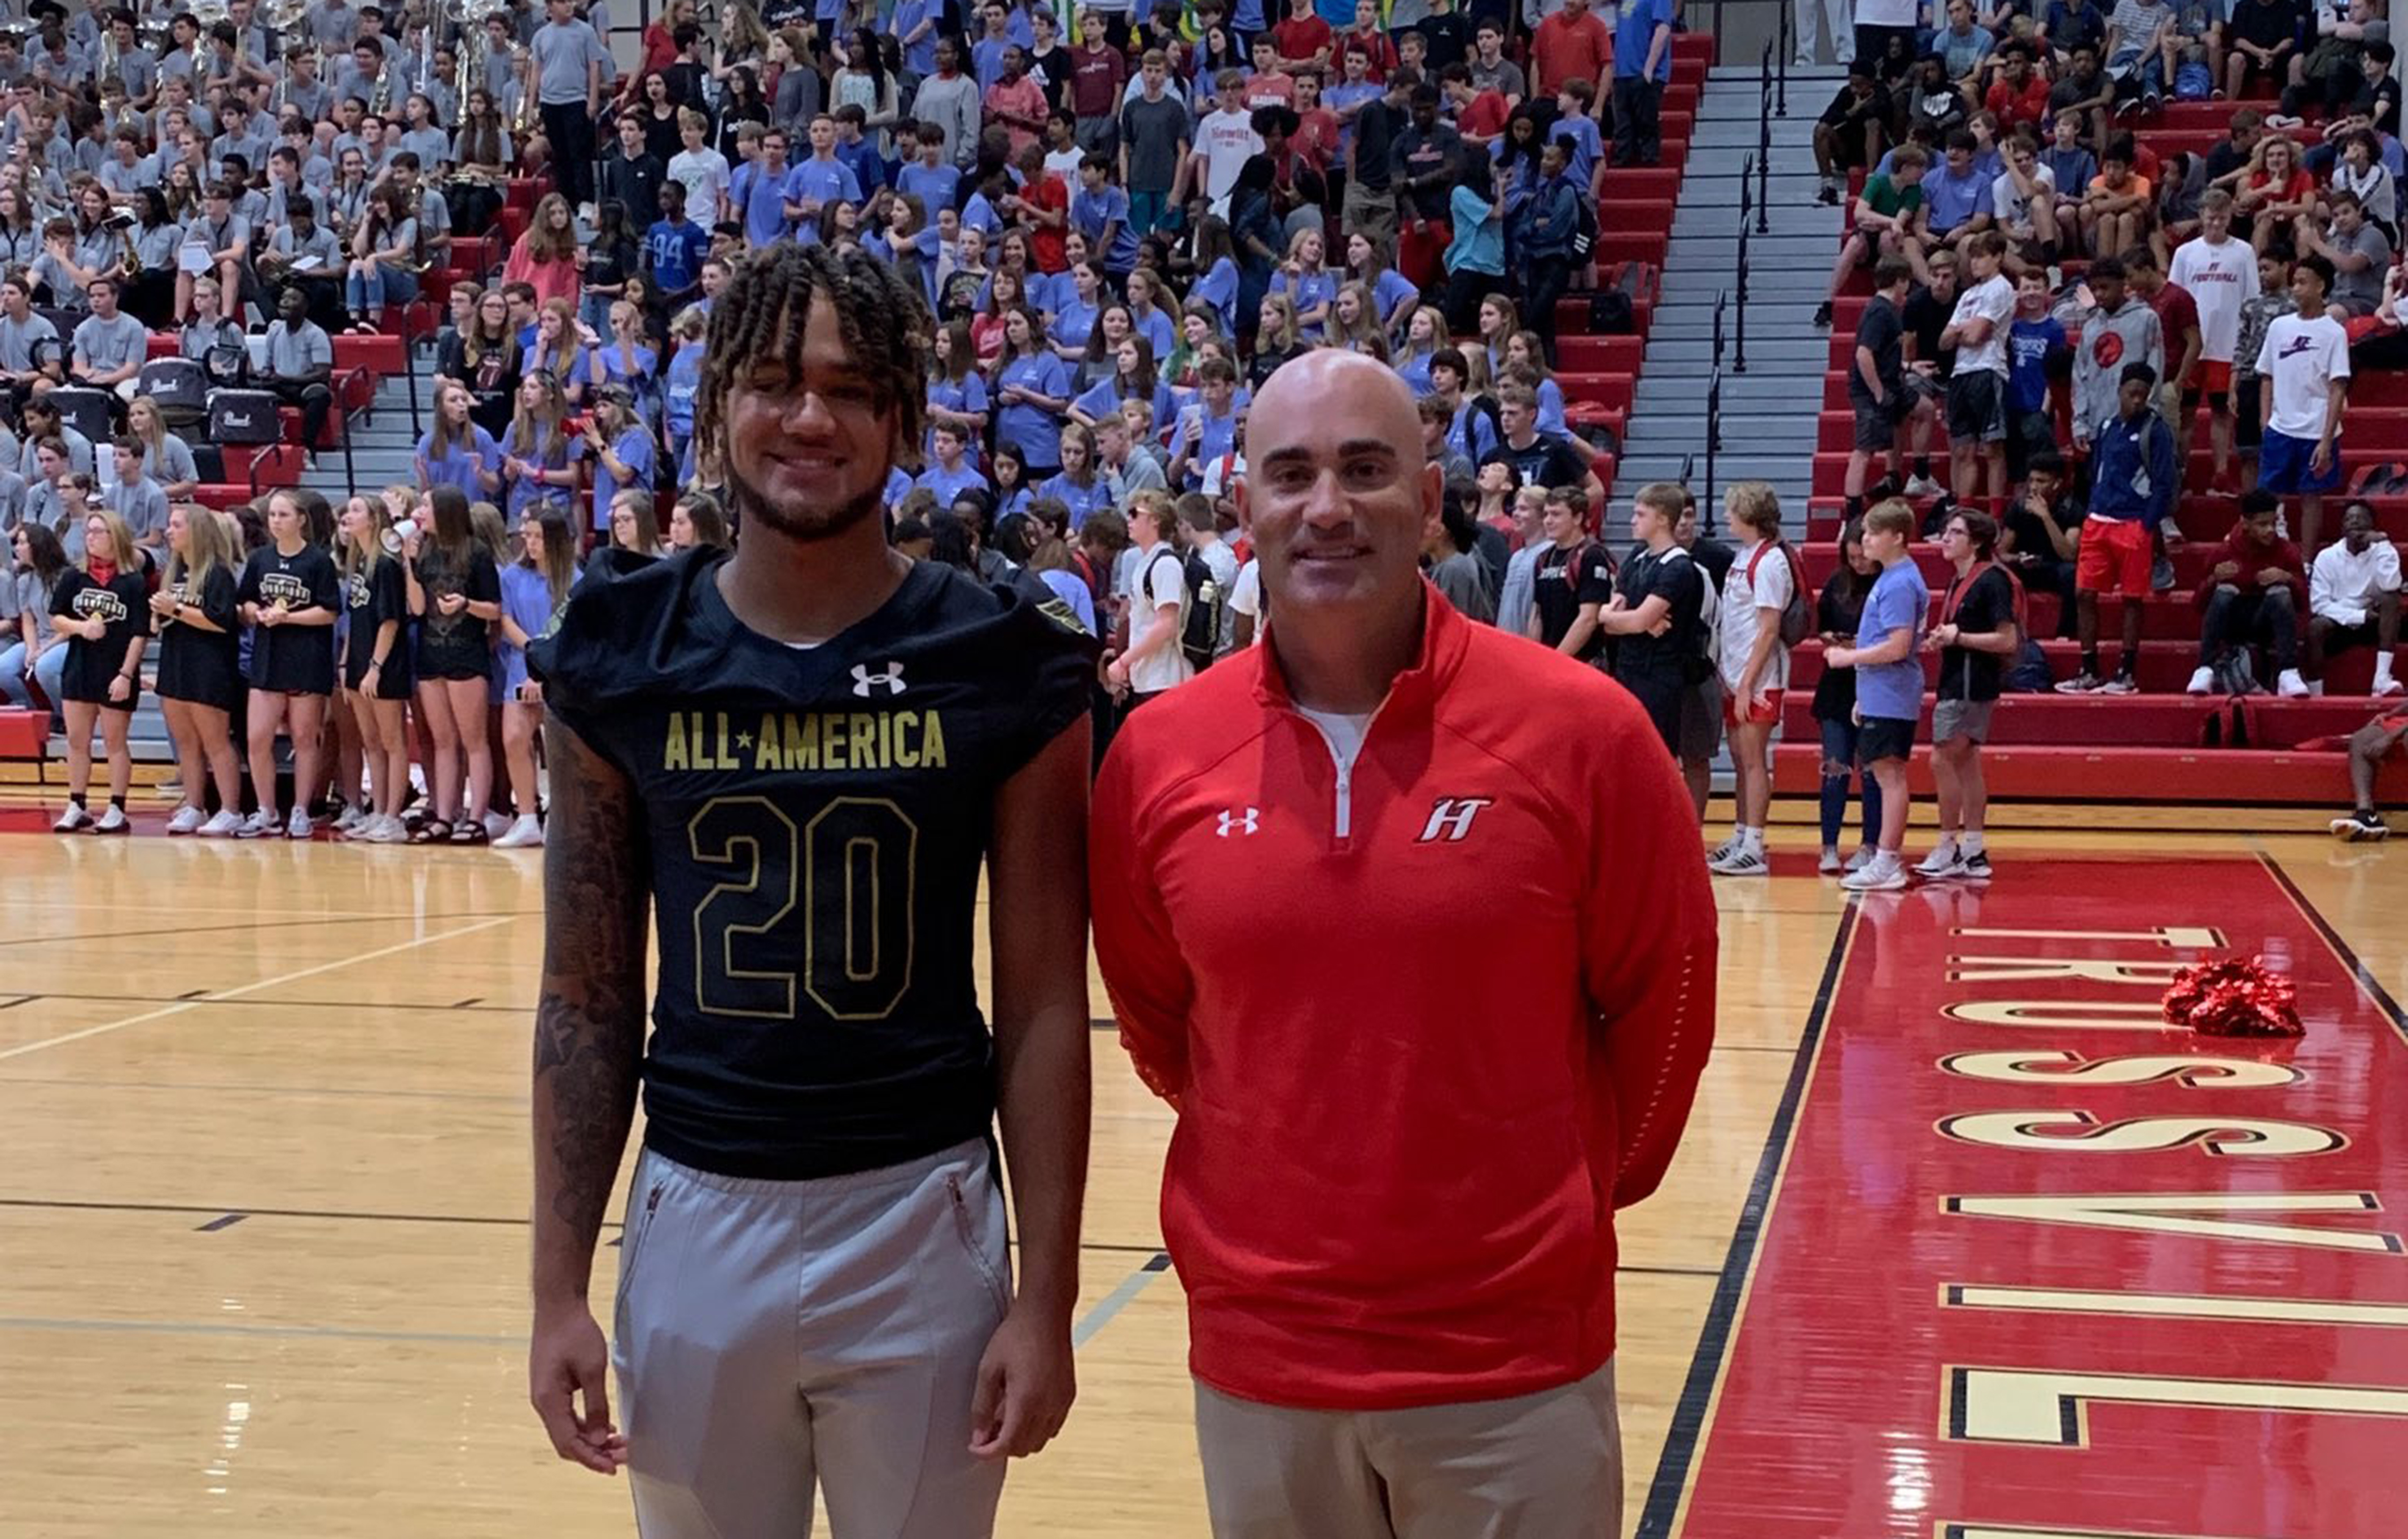 Huskies' Dazalin Worsham presented with Under Armour All-American jersey